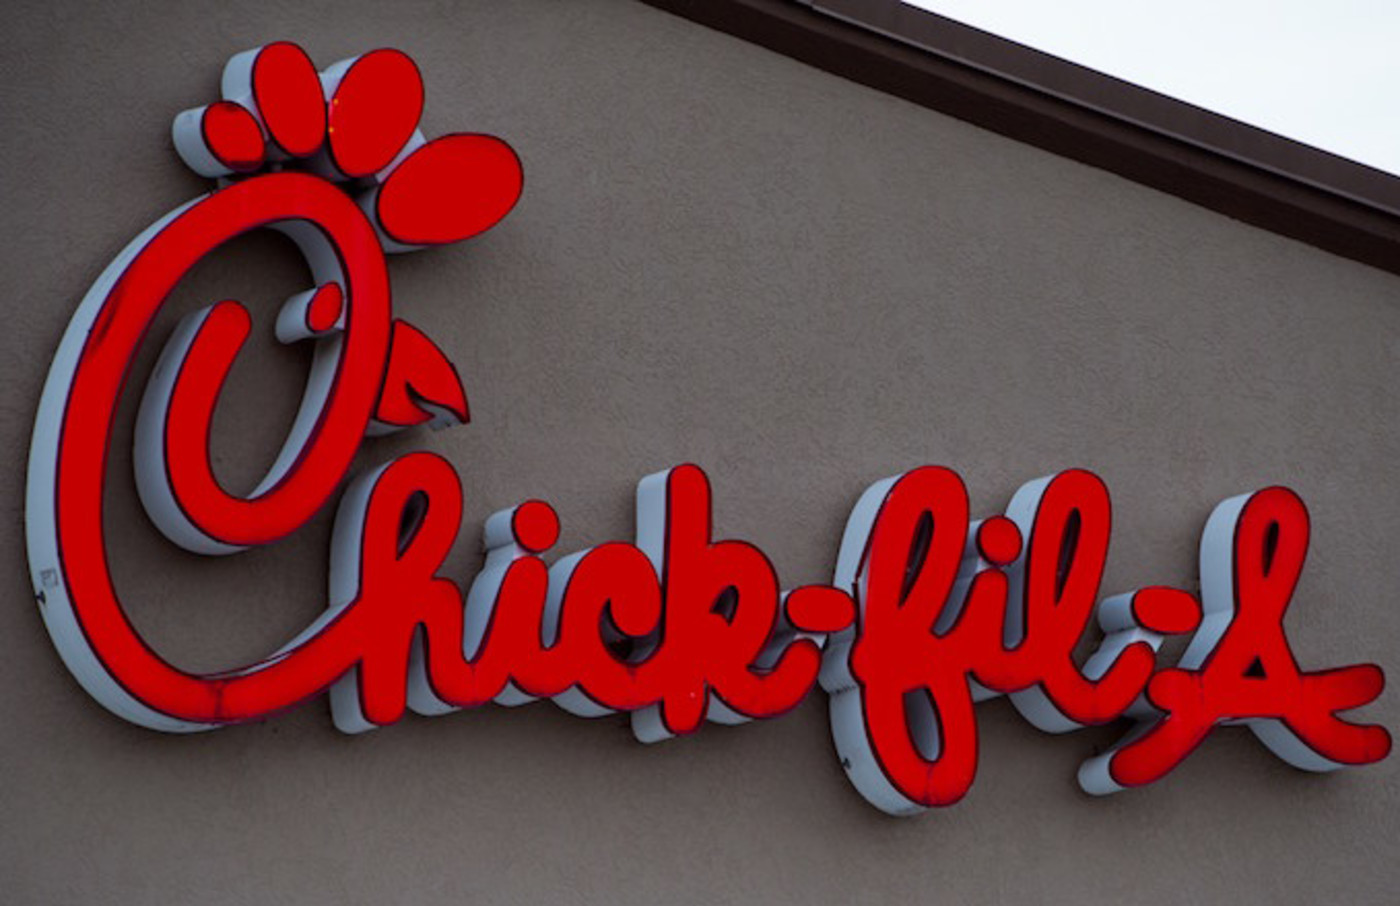 Chick-fil-A restaurant is seen in Chantilly, Virginia.